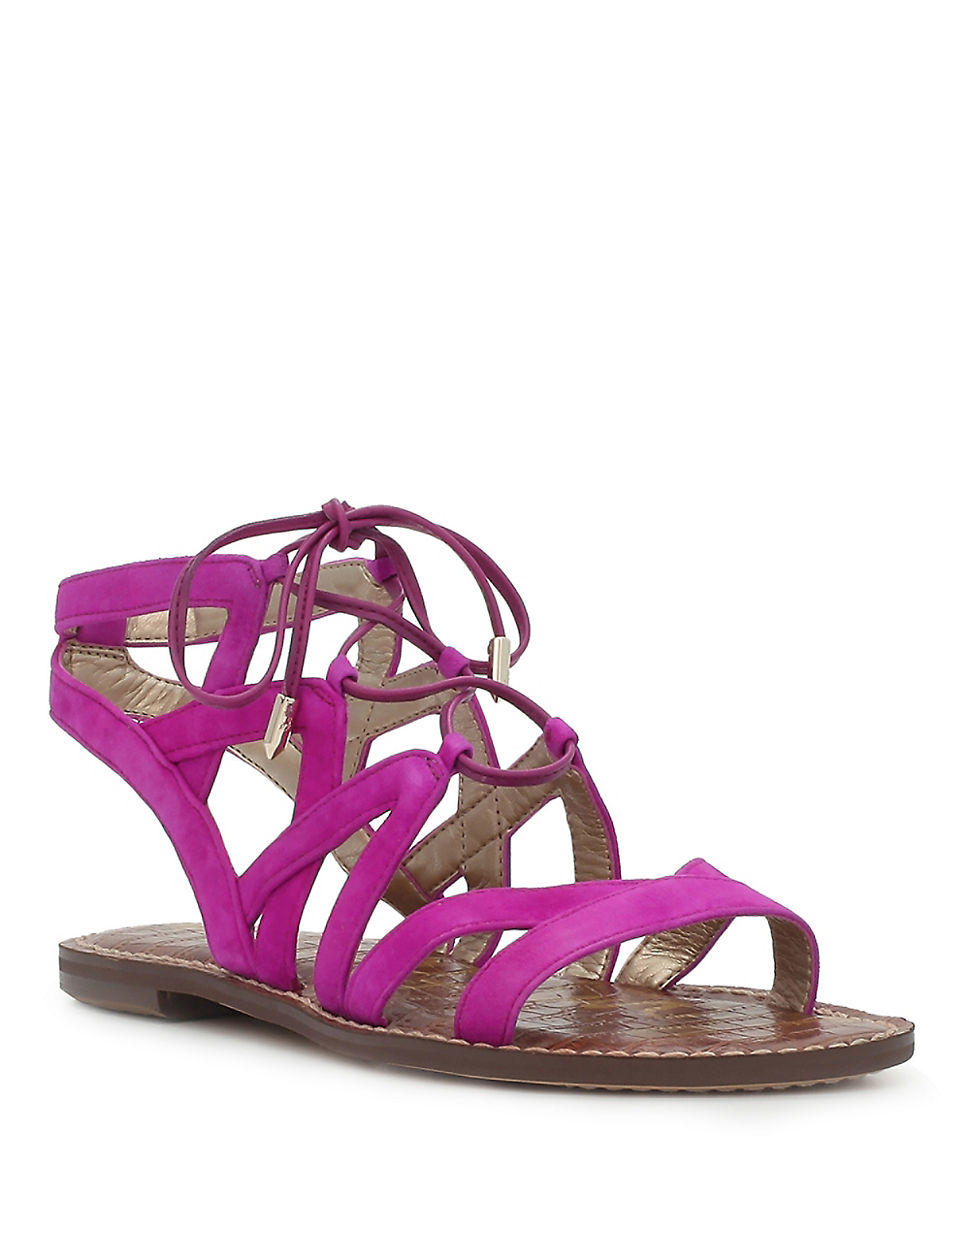 Lyst Sam Edelman Gemma Suede Gladiator Sandals In Purple